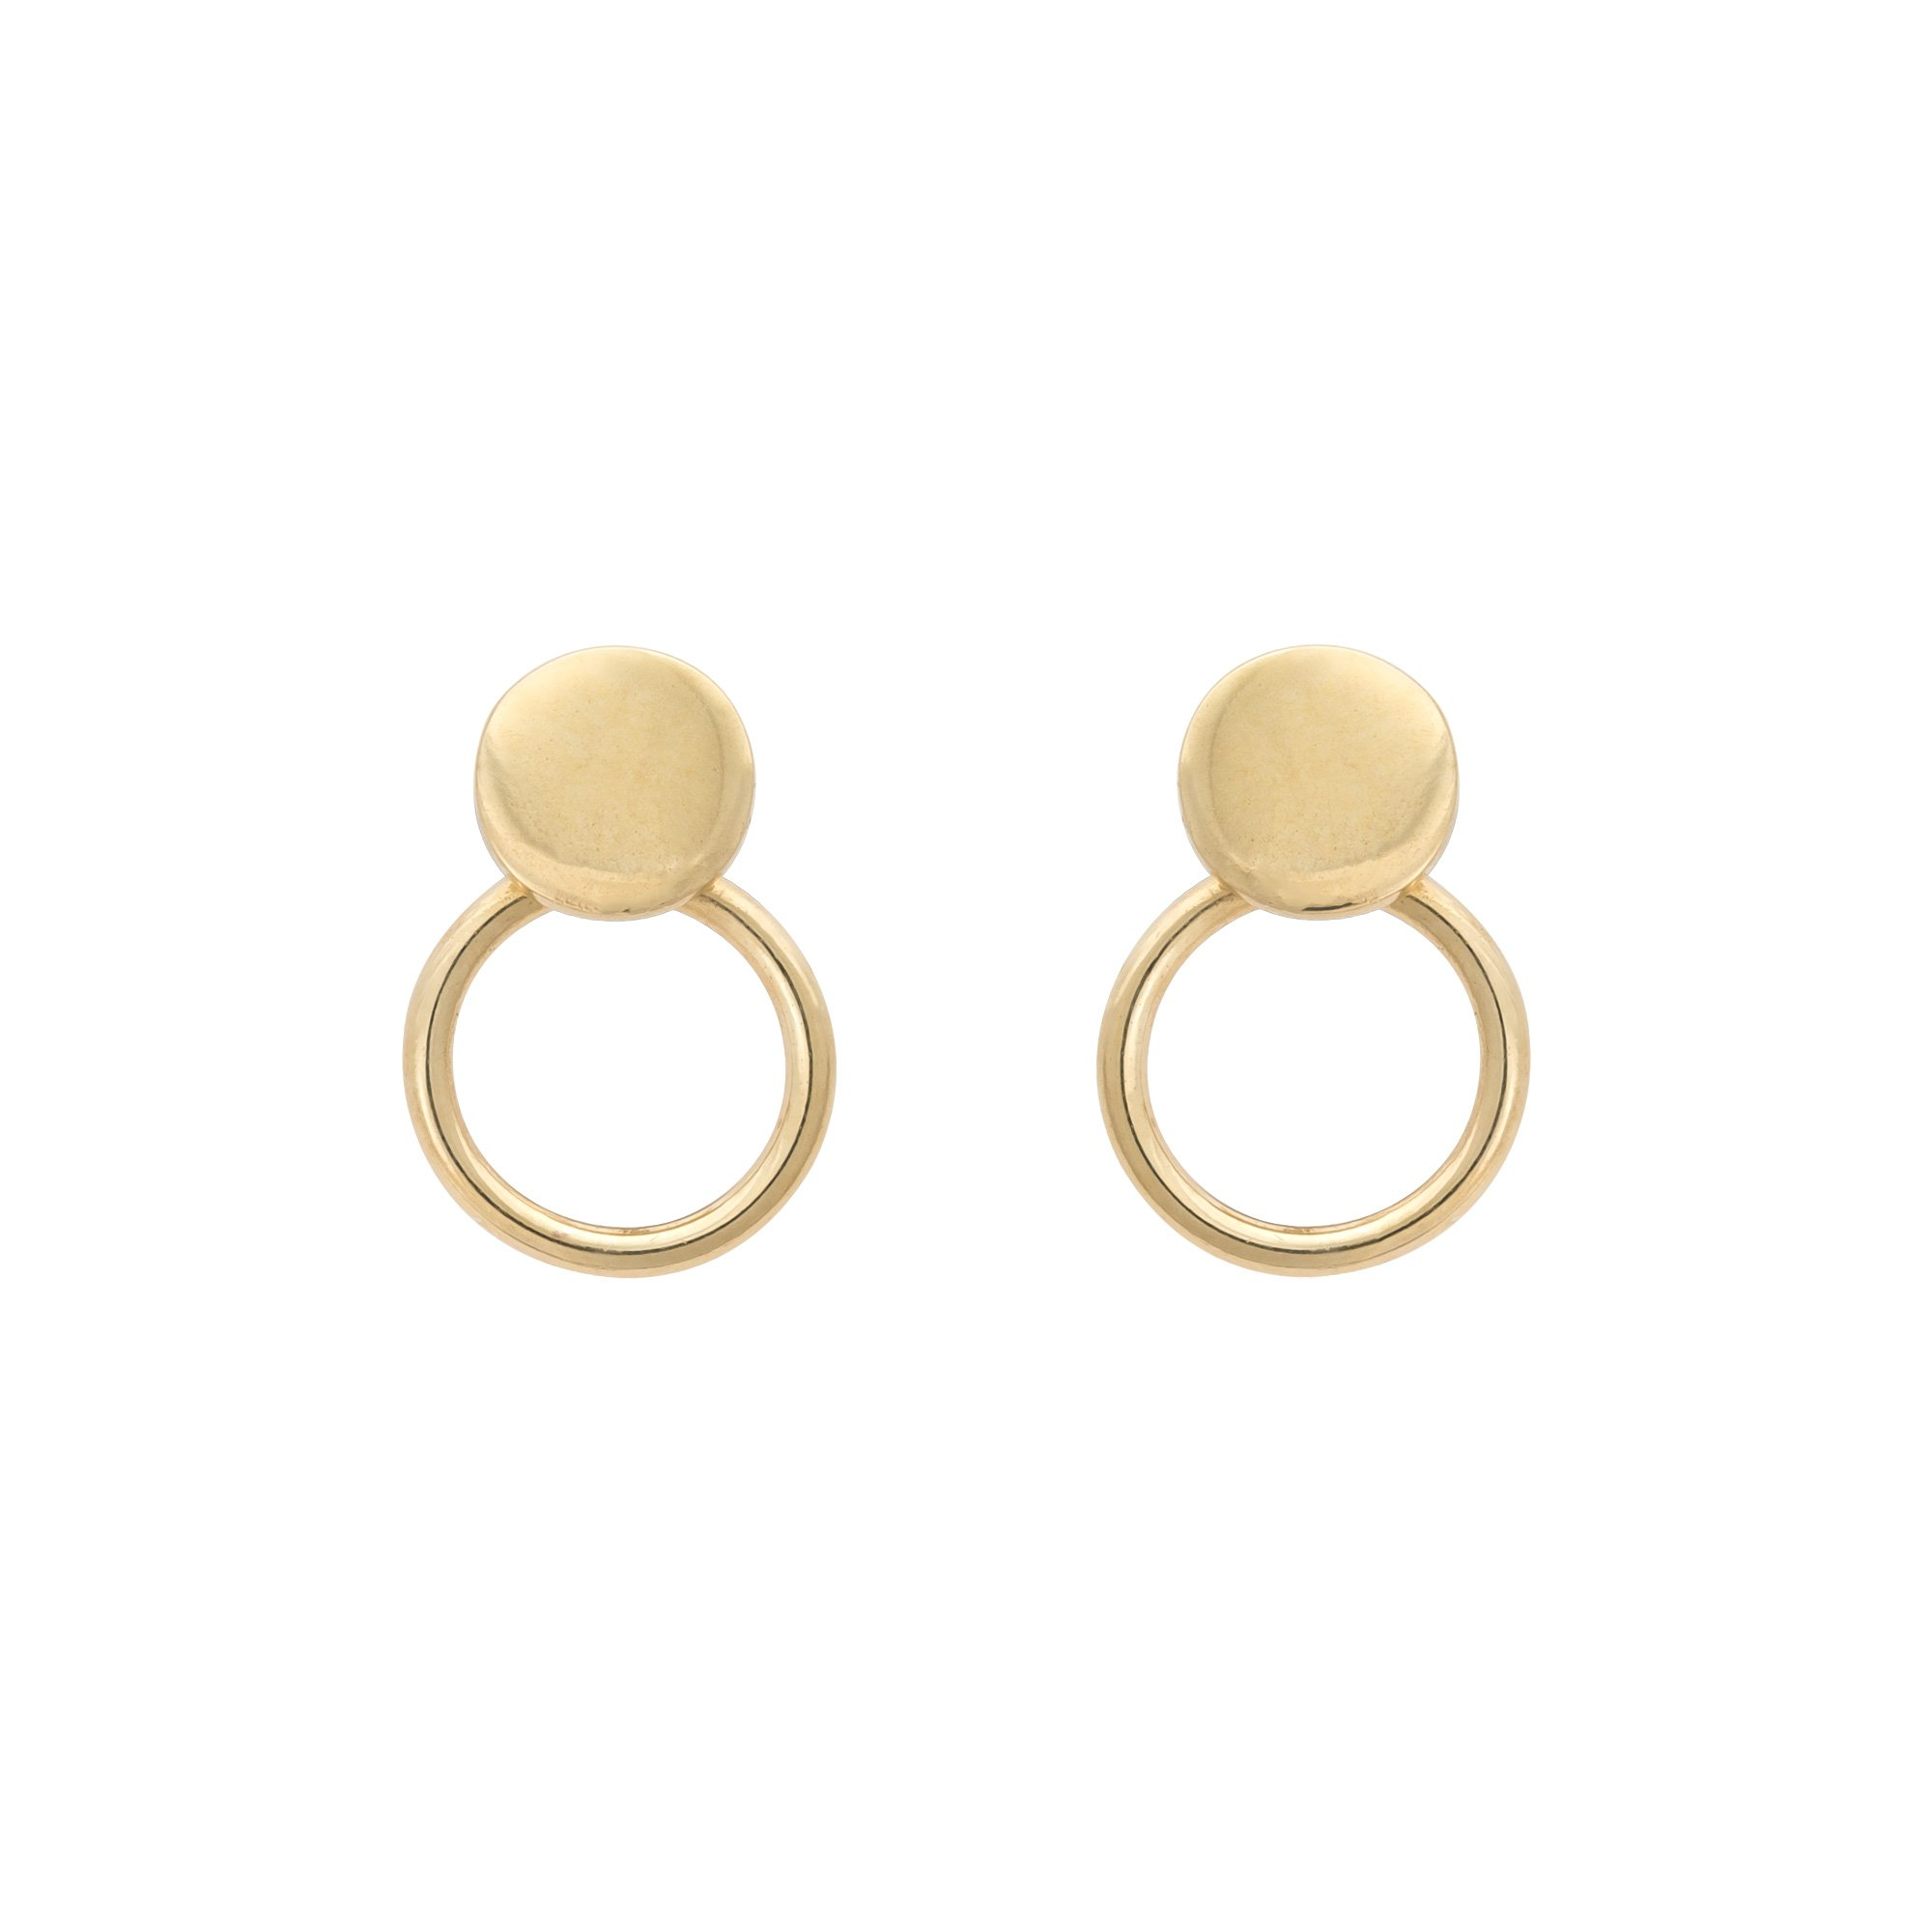 single earring stud earrings nichol open products wendy collections circle